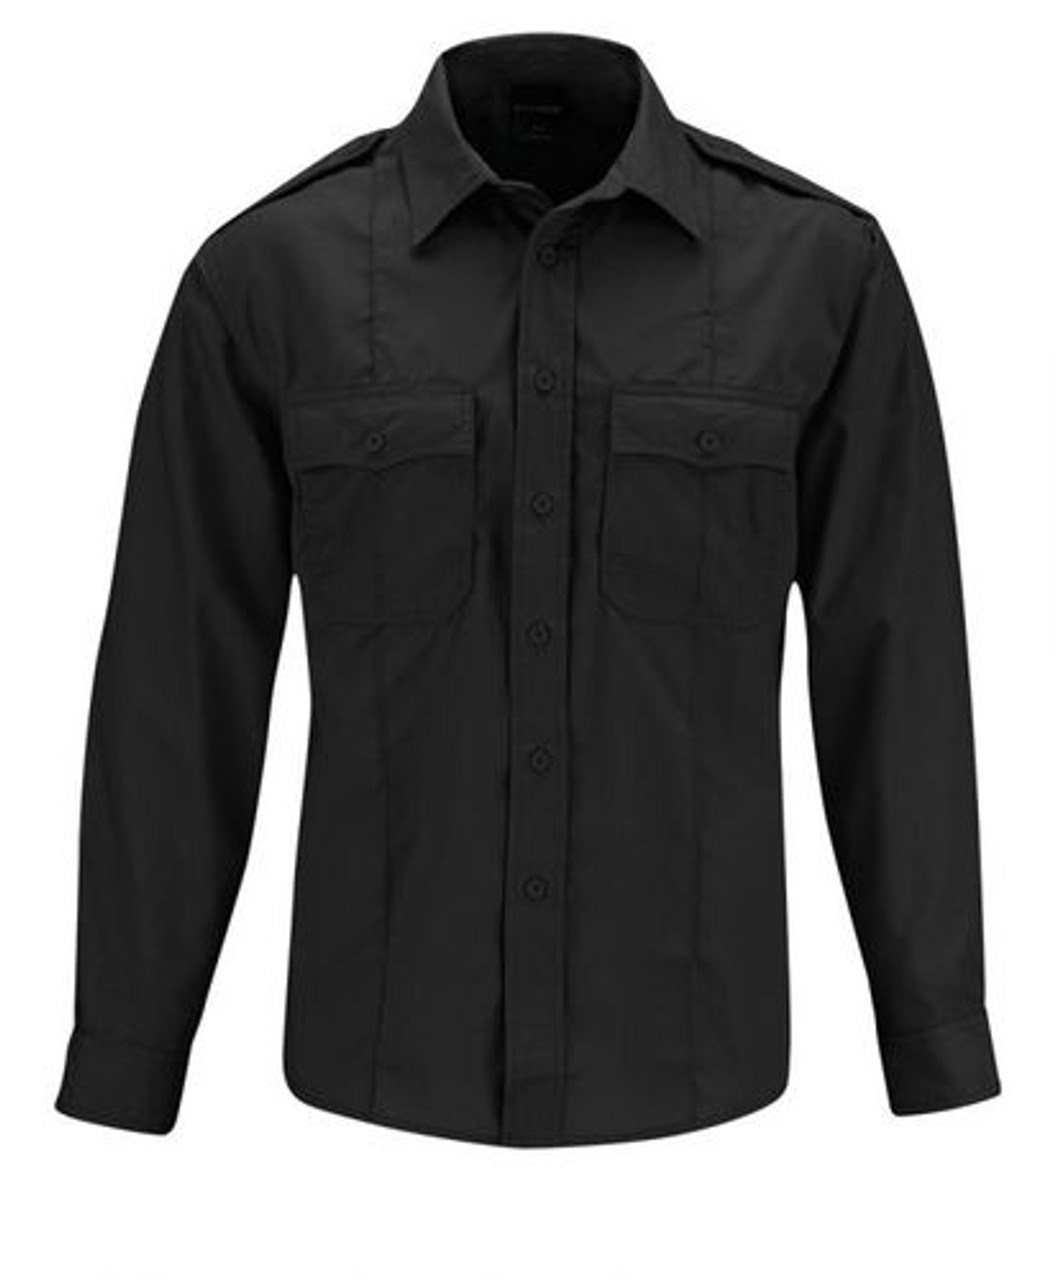 Propper® F5338-50 Men's Class B Tactical Uniform Button-Down Shirt, Long Sleeve, 2 Chest Pockets, Badge Tab, Polyester/Cotton ripstop w/Teflon™fabric protector, available in Black, Tan and Navy